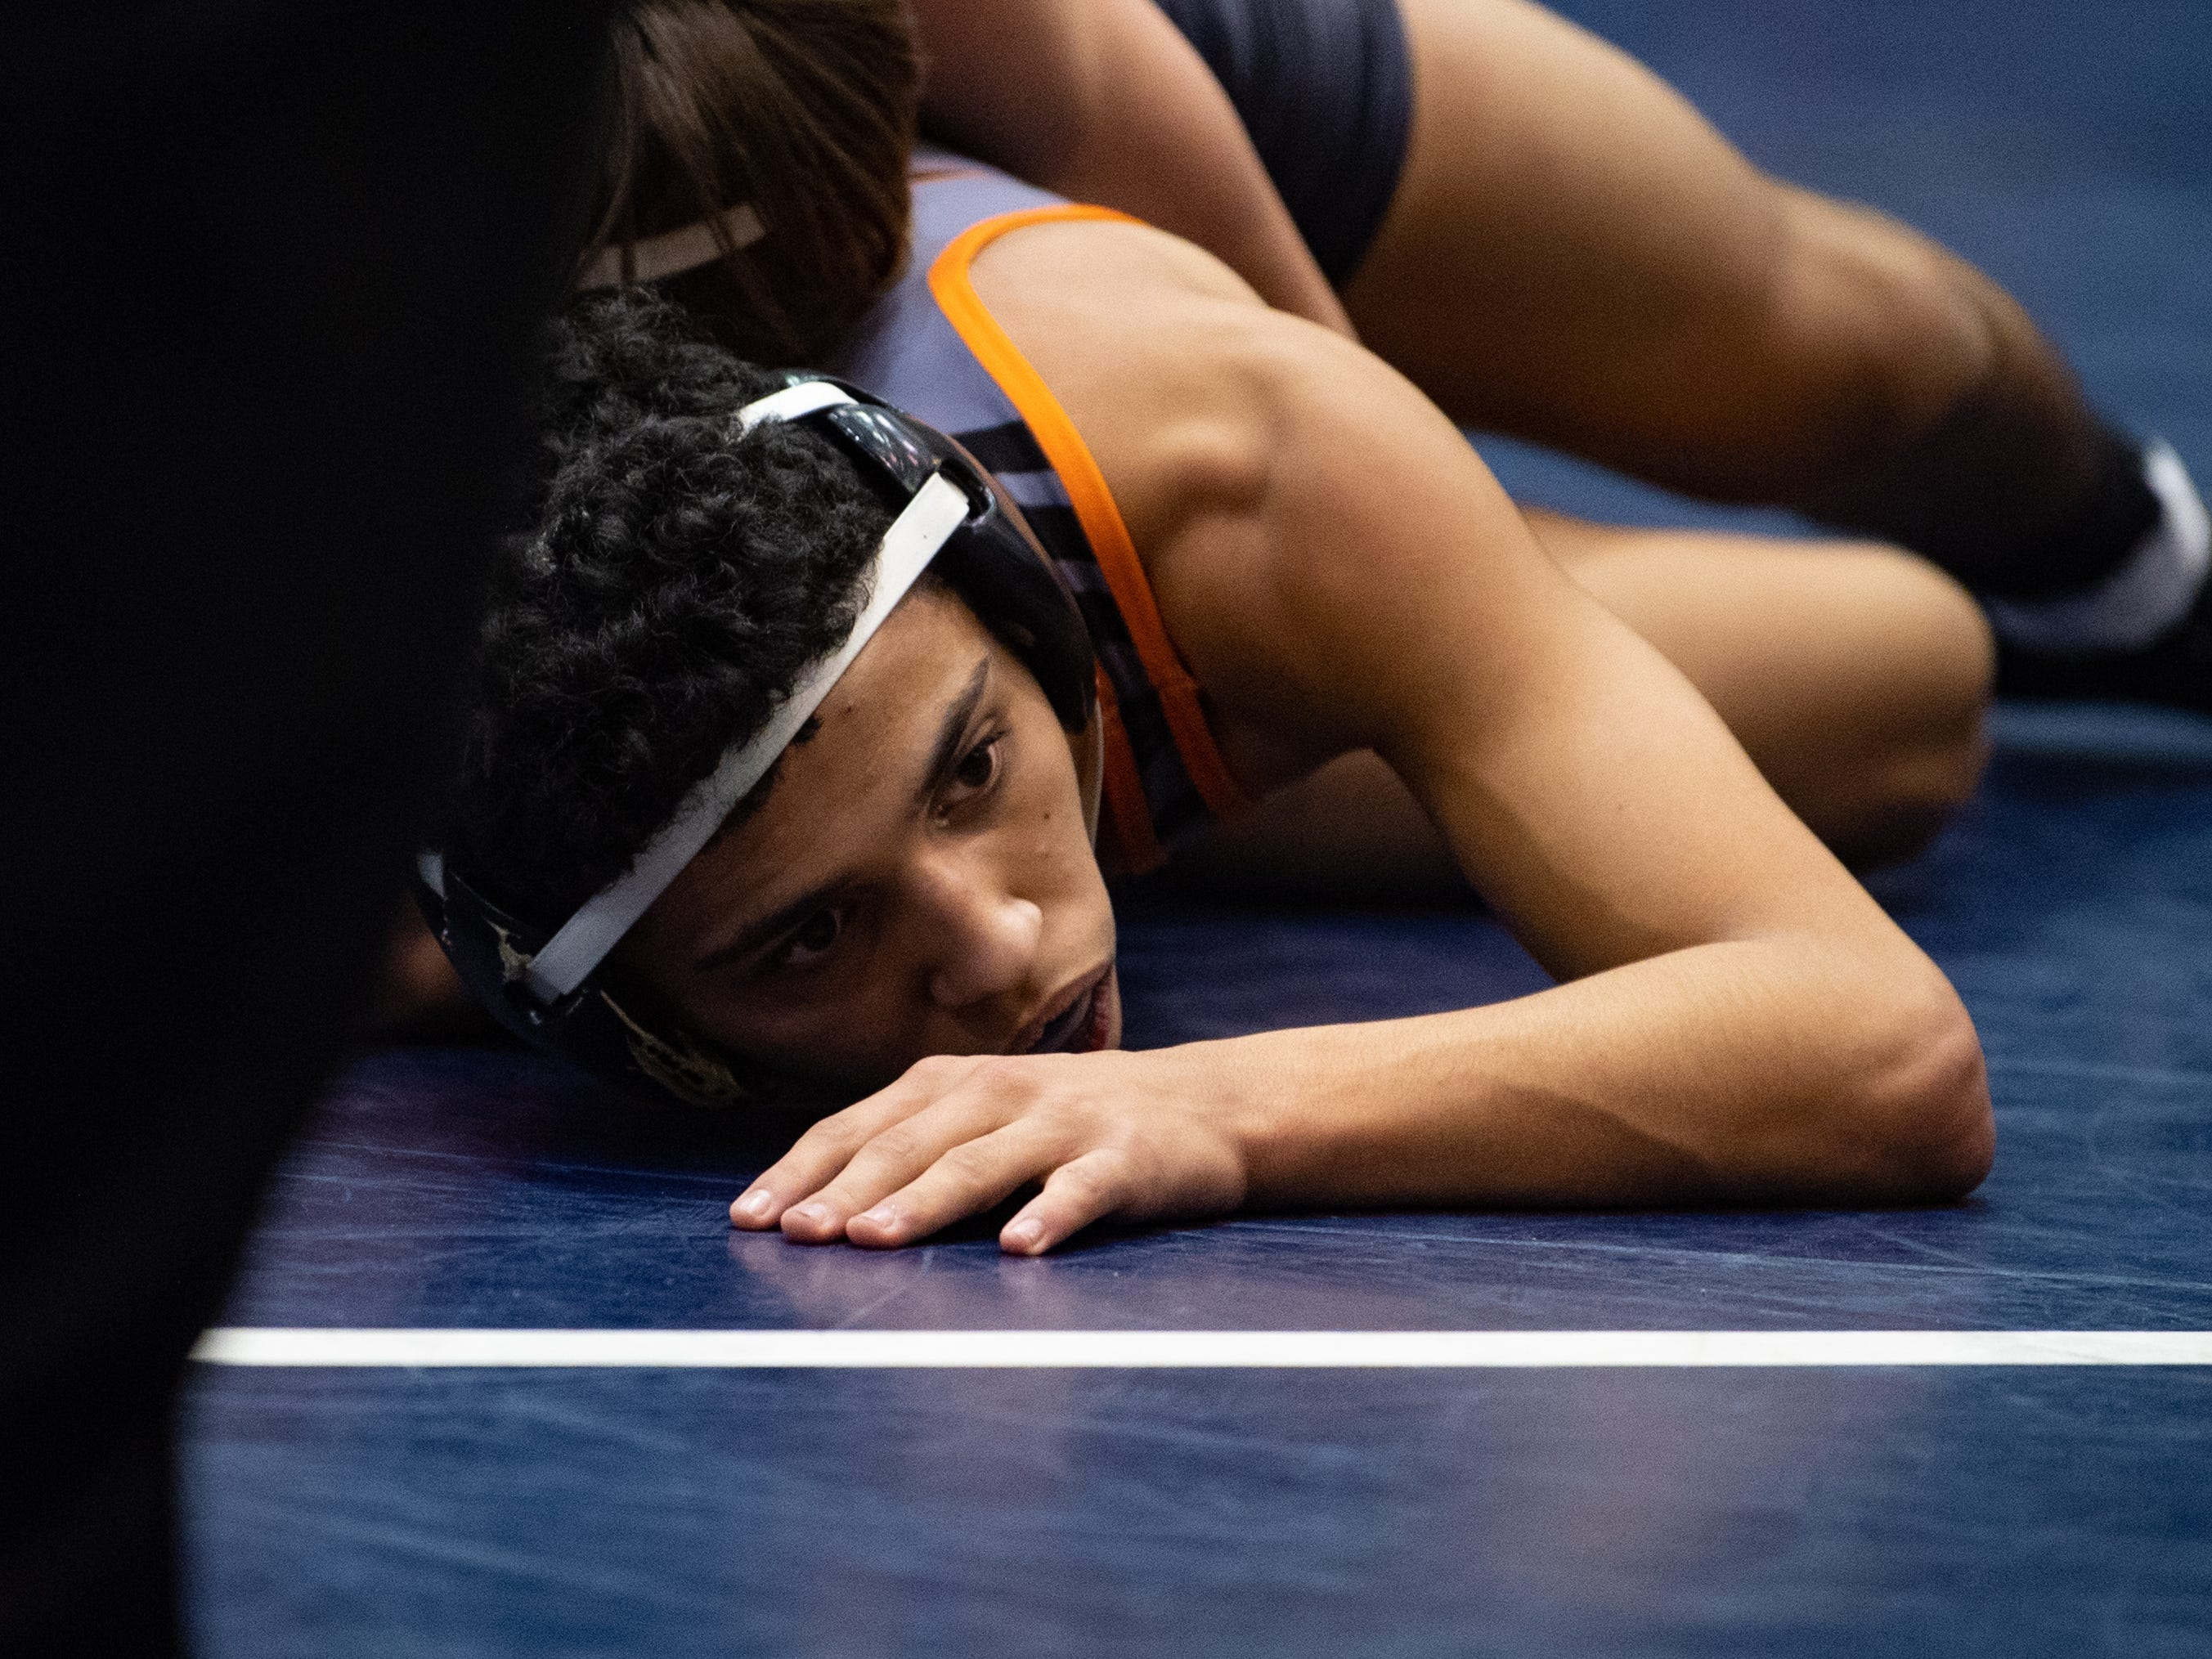 Donovan Carrero of Central York tries to escape the grapple during the wrestling dual meet between Dallastown and Central York at Dallastown Area High School, Thursday, January 3, 2019. The Wildcats defeated the Panthers 62-18.